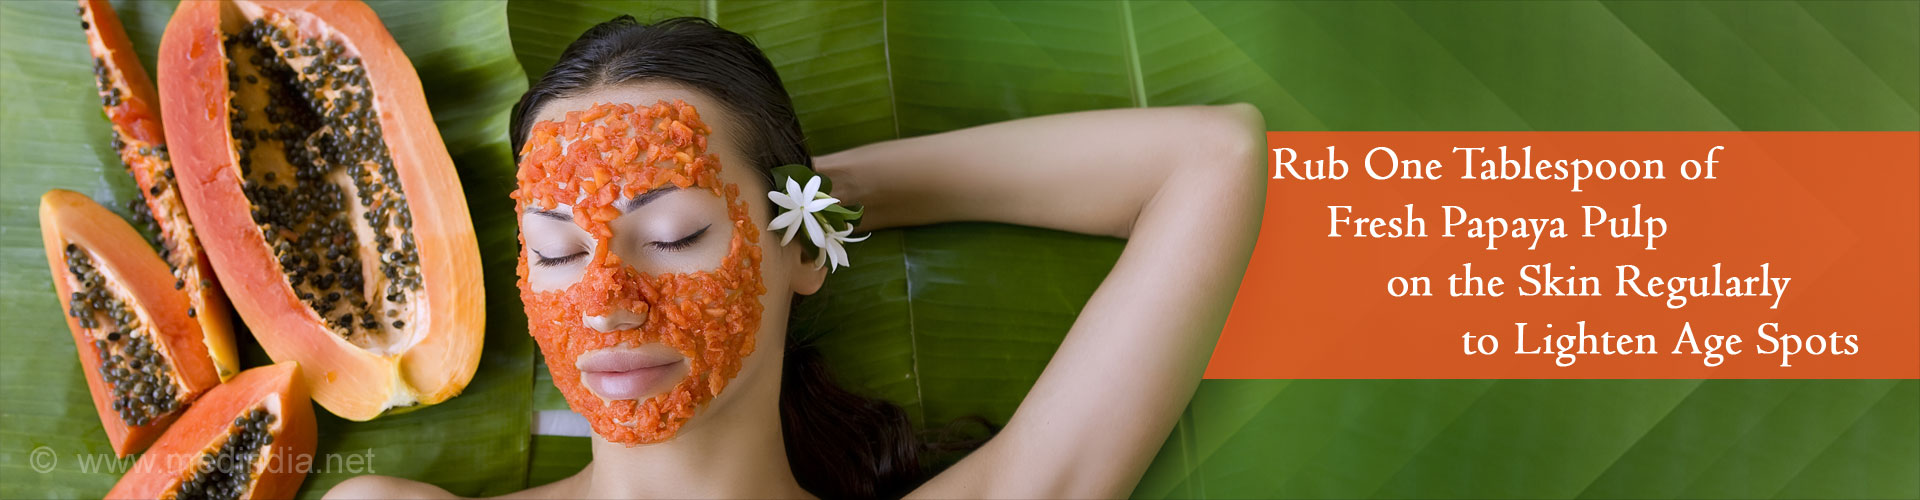 Top 10 Home Remedies to Get Rid of Age Spots